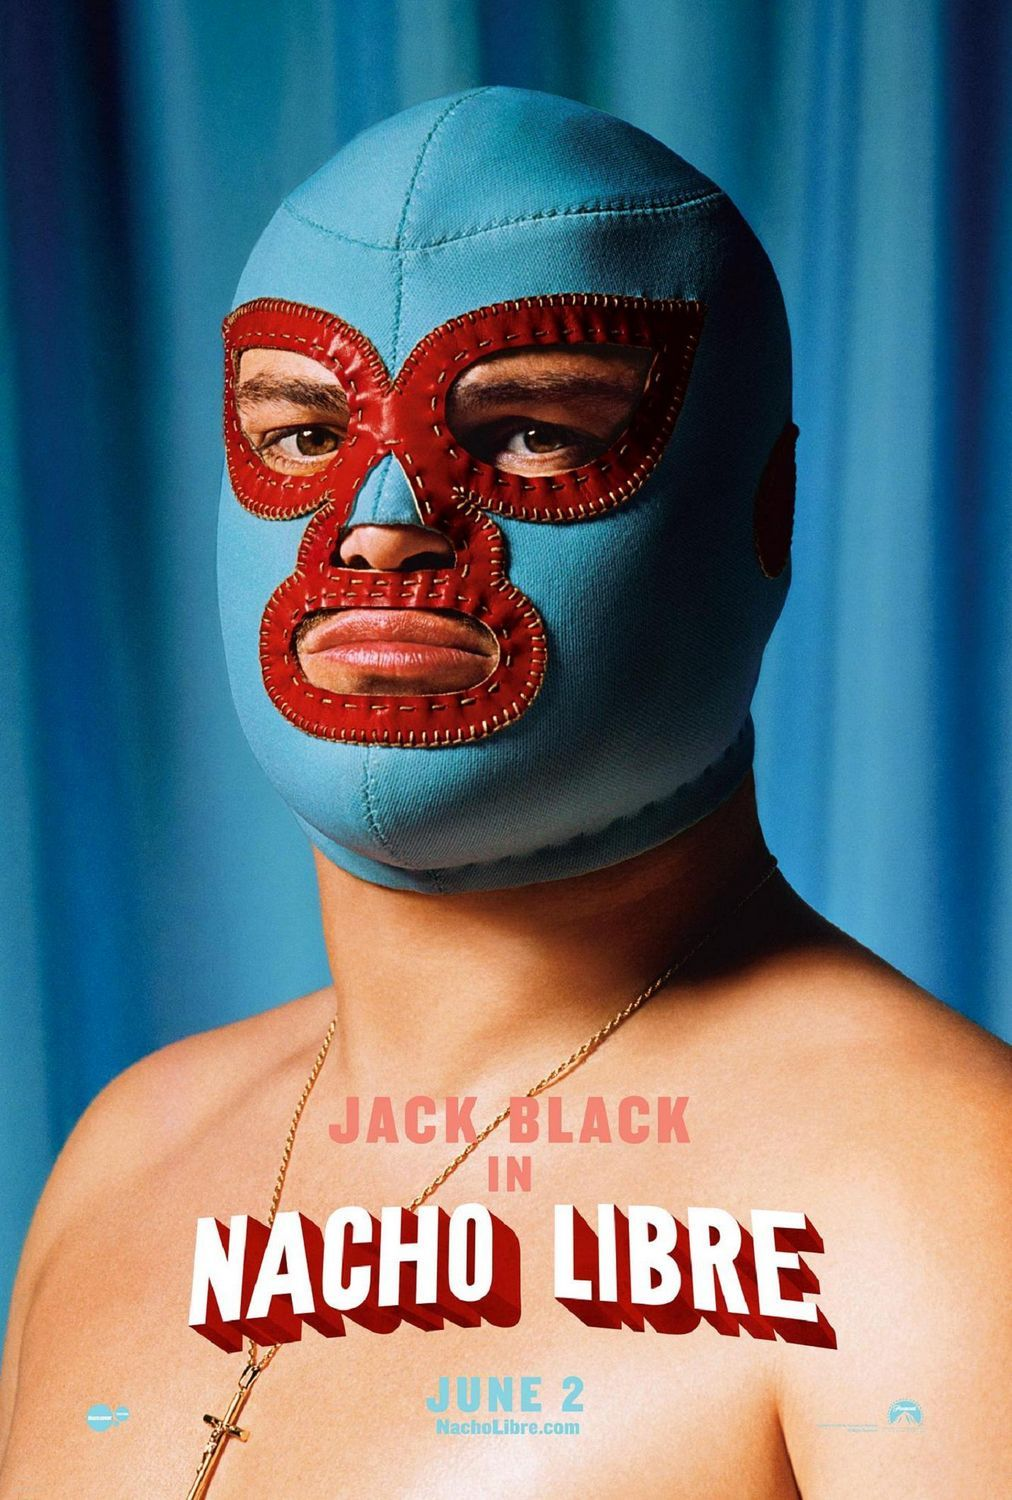 nacho libre You are eligible for a full refund if no shippingpass-eligible orders have been placedyou cannot receive a refund if you have placed a shippingpass-eligible orderin this case, the customer care team will remove your account from auto-renewal to ensure you are not charged for an additional year and you can continue to use the subscription until the end of your subscription term.